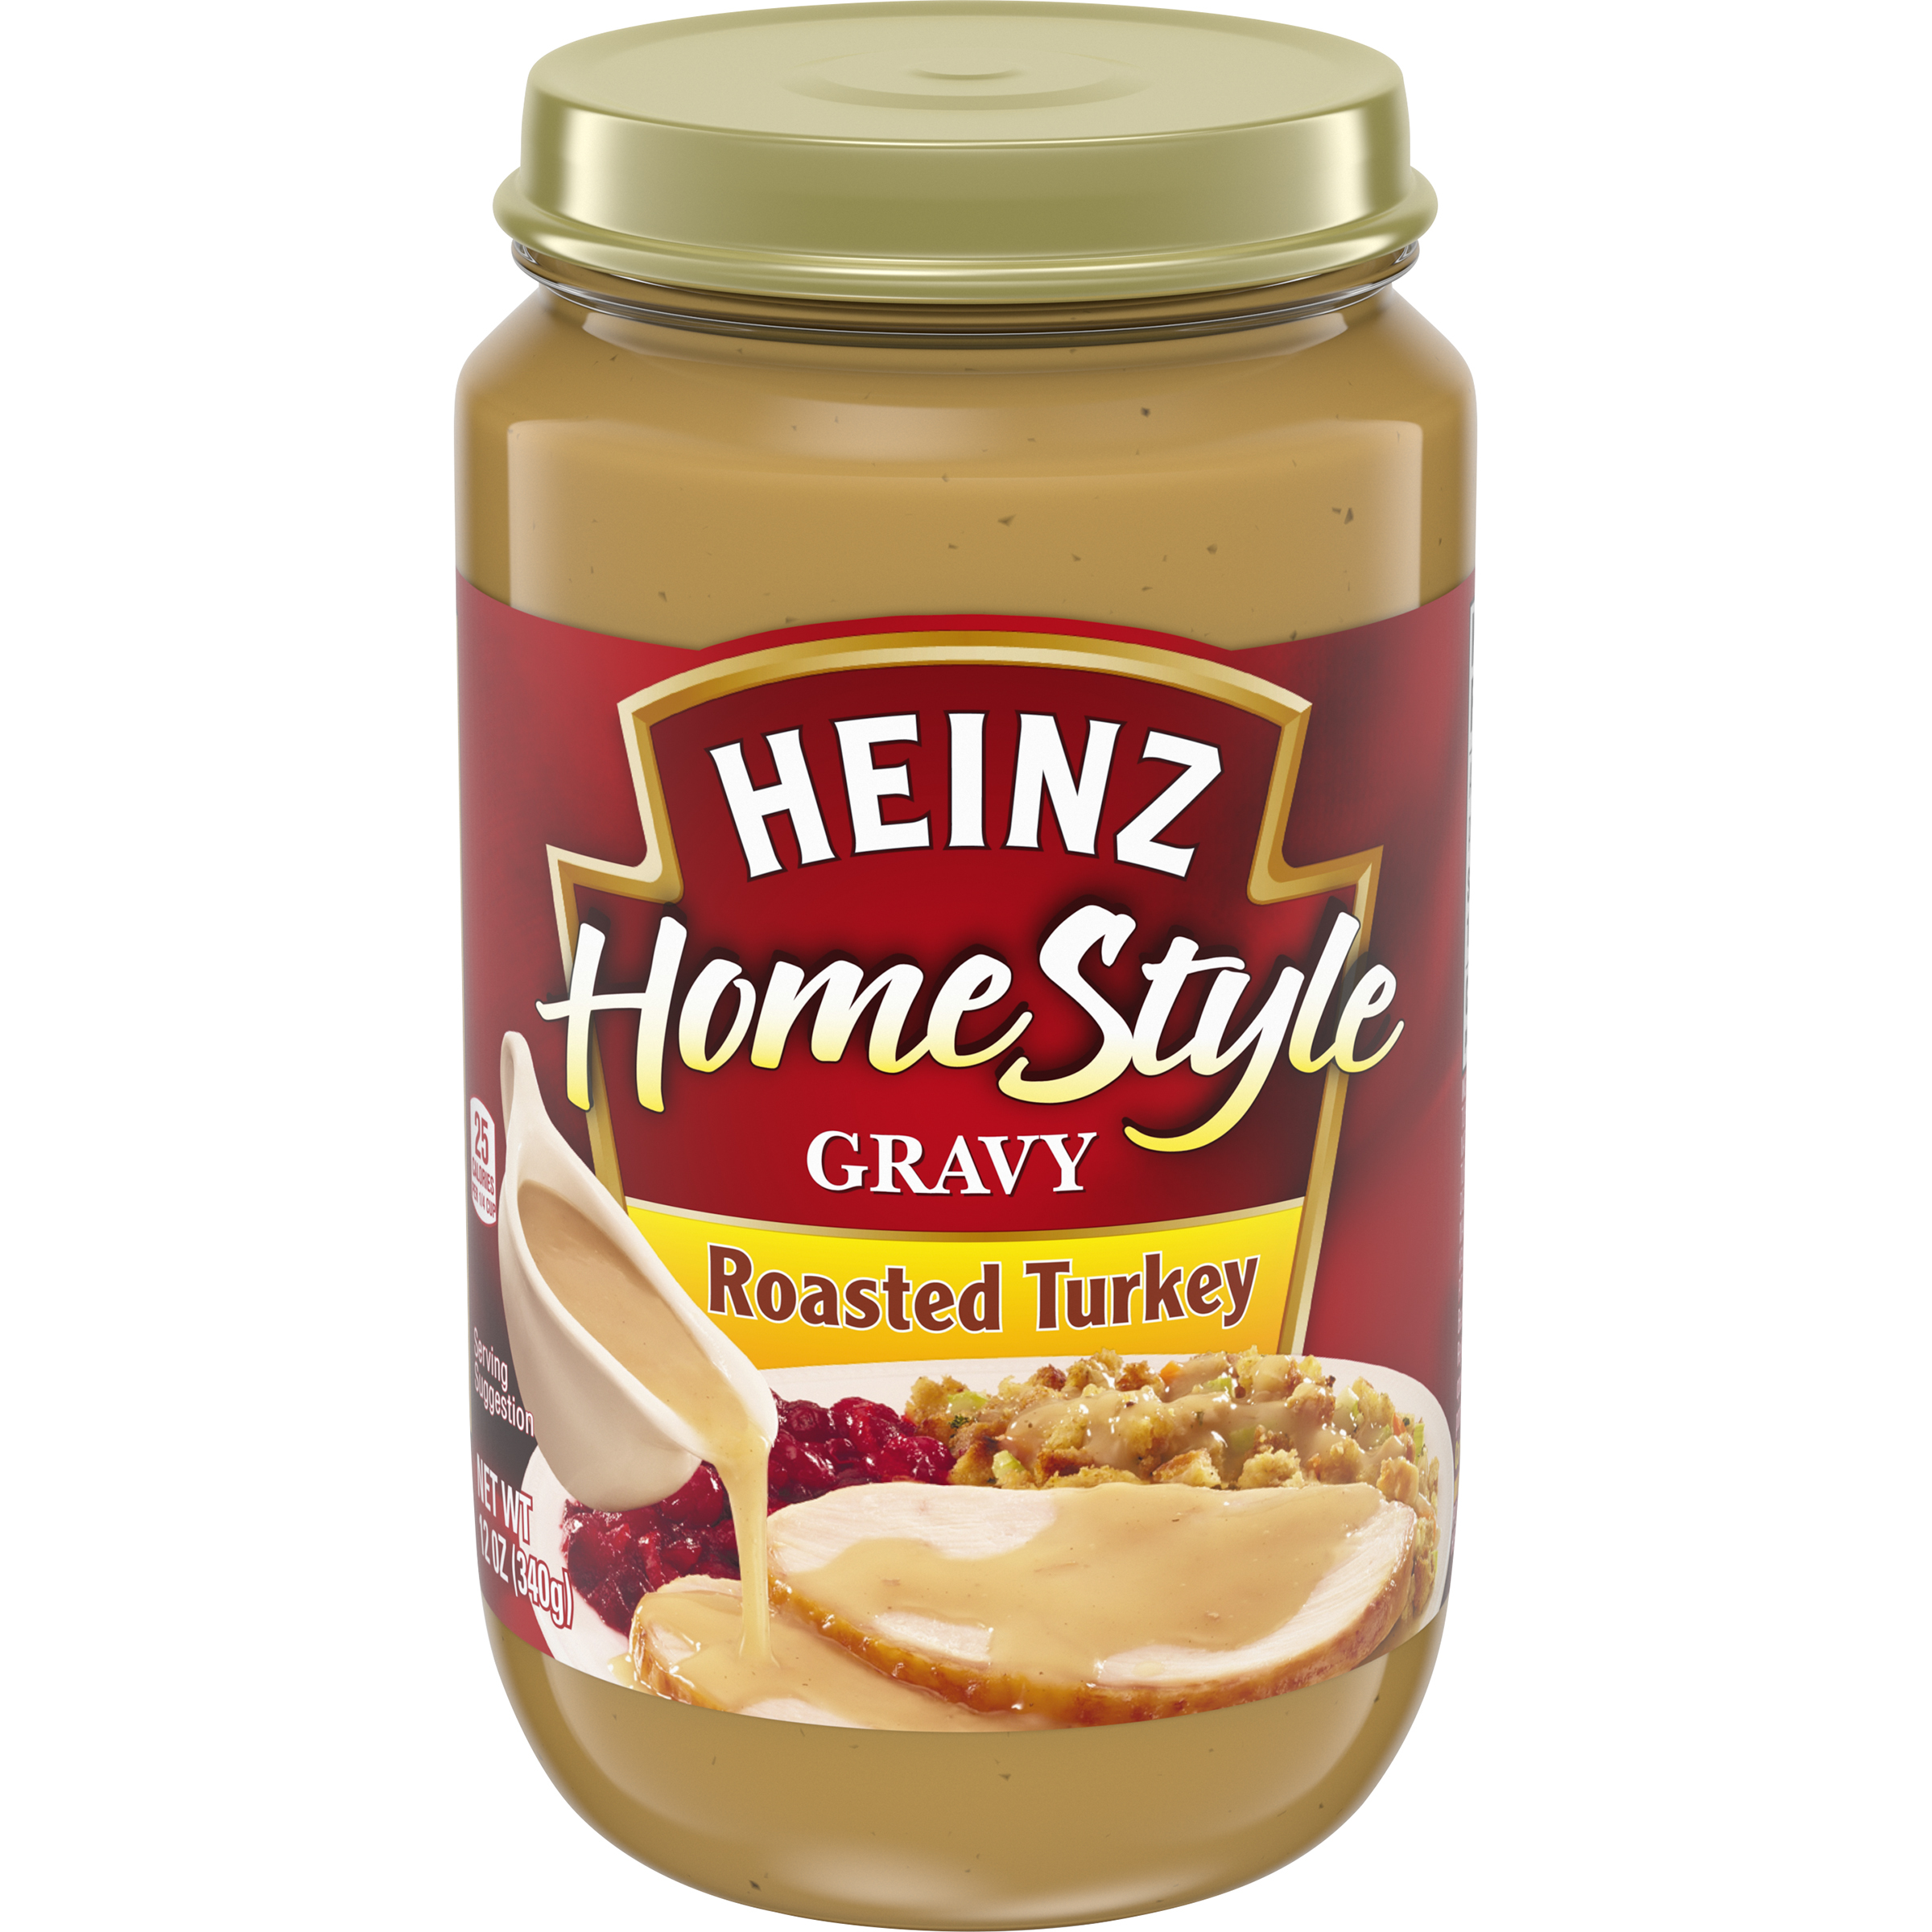 Heinz Home Style Roasted Turkey Gravy 12 oz Jar image